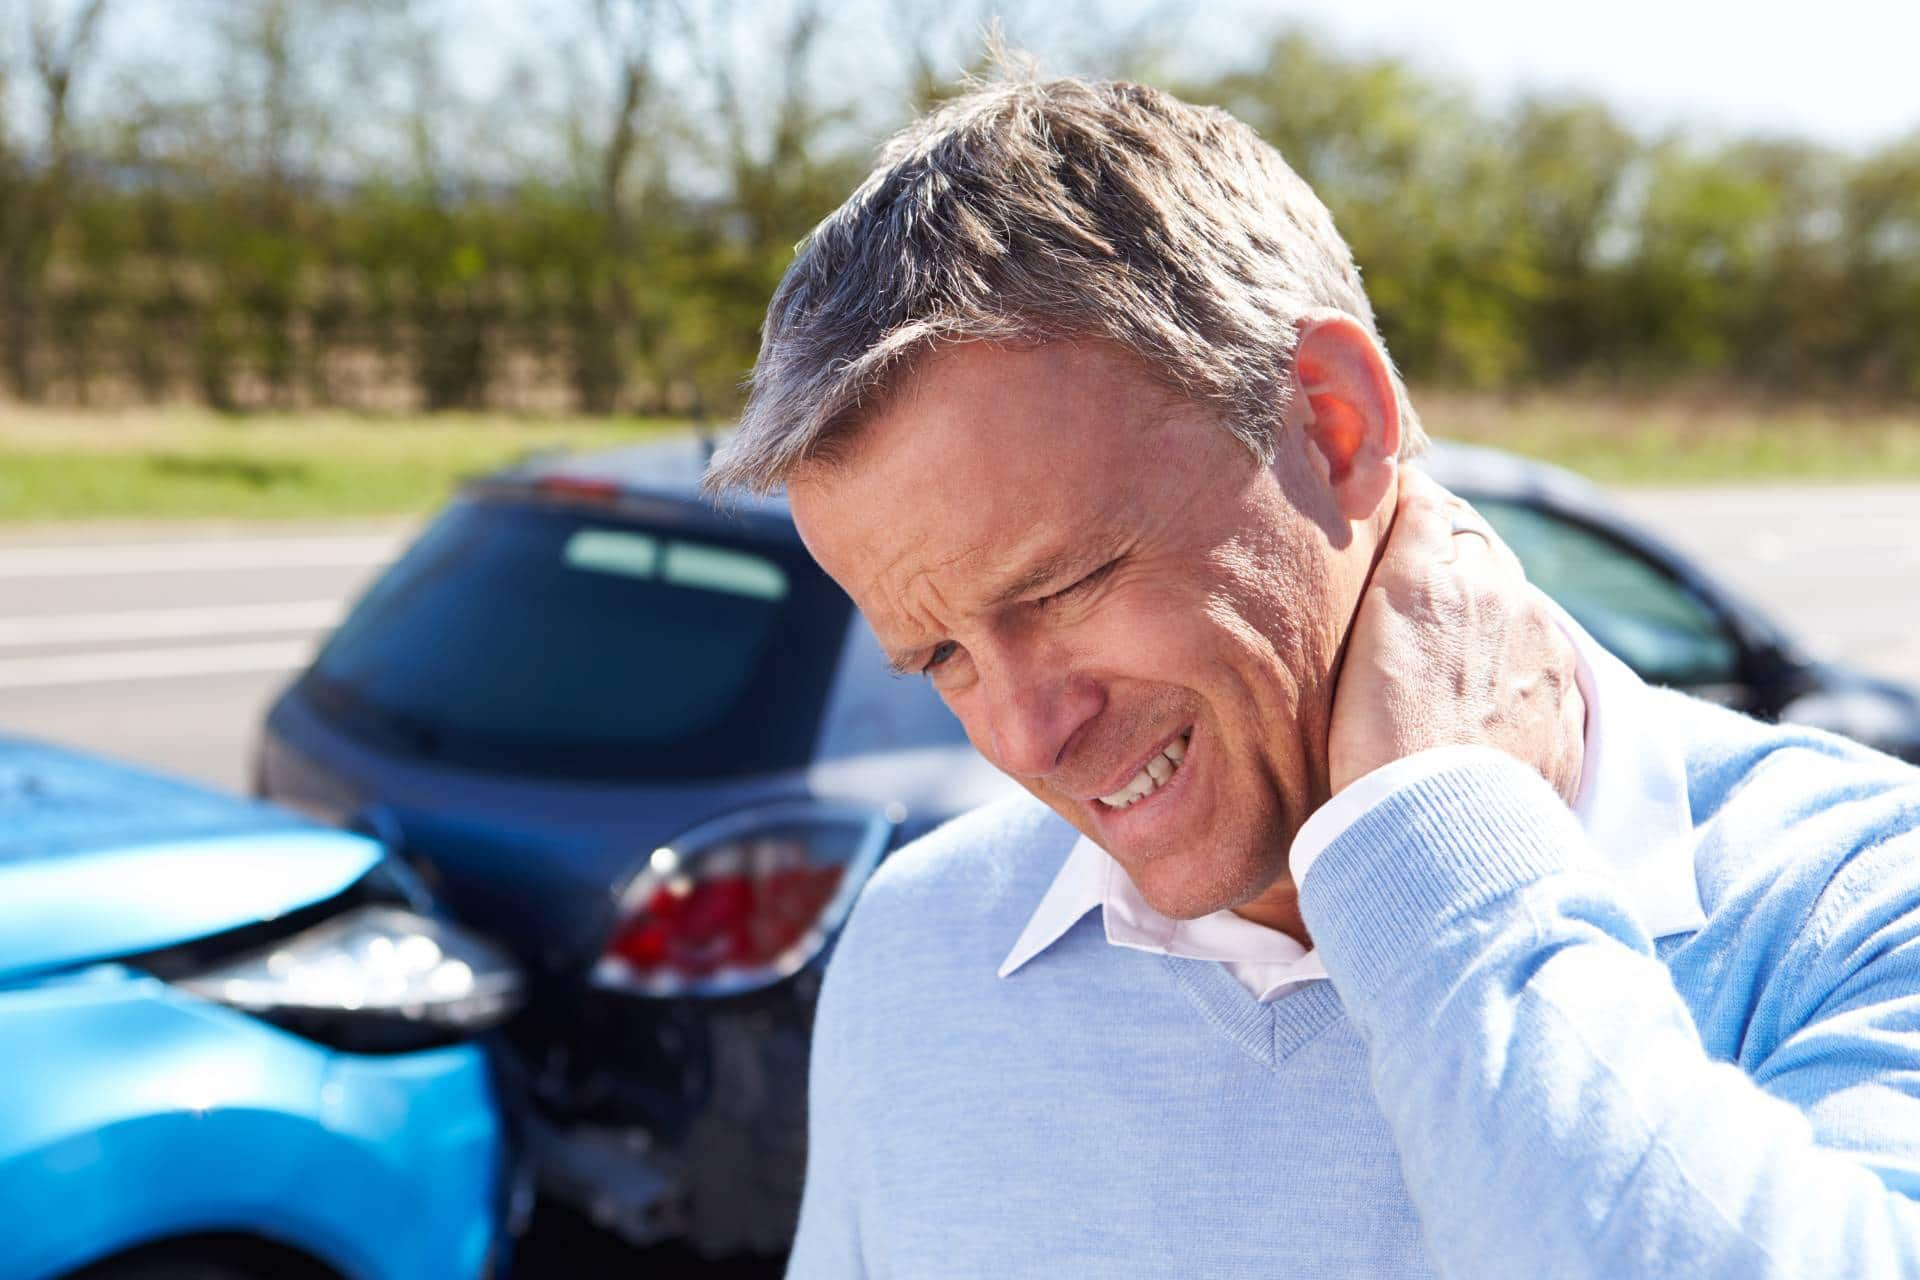 Hurt in a car accident? Schedule a free consultation with our personal injury lawyers at the Angell Law Firm in Milton, GA